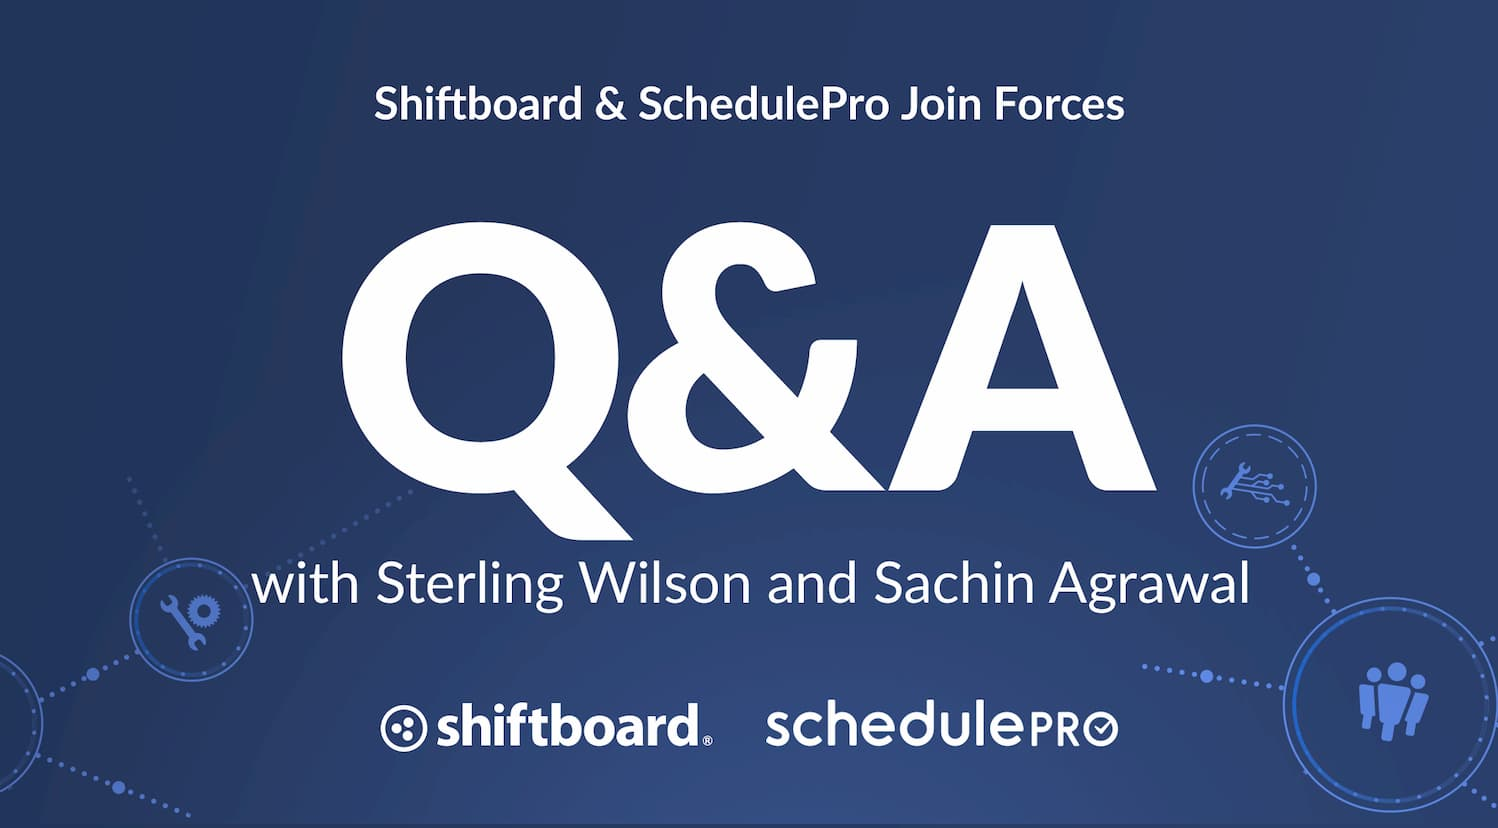 Shiftboard and SchedulePro Join Forces:  Q&A with Sterling Wilson and Sachin Agrawal